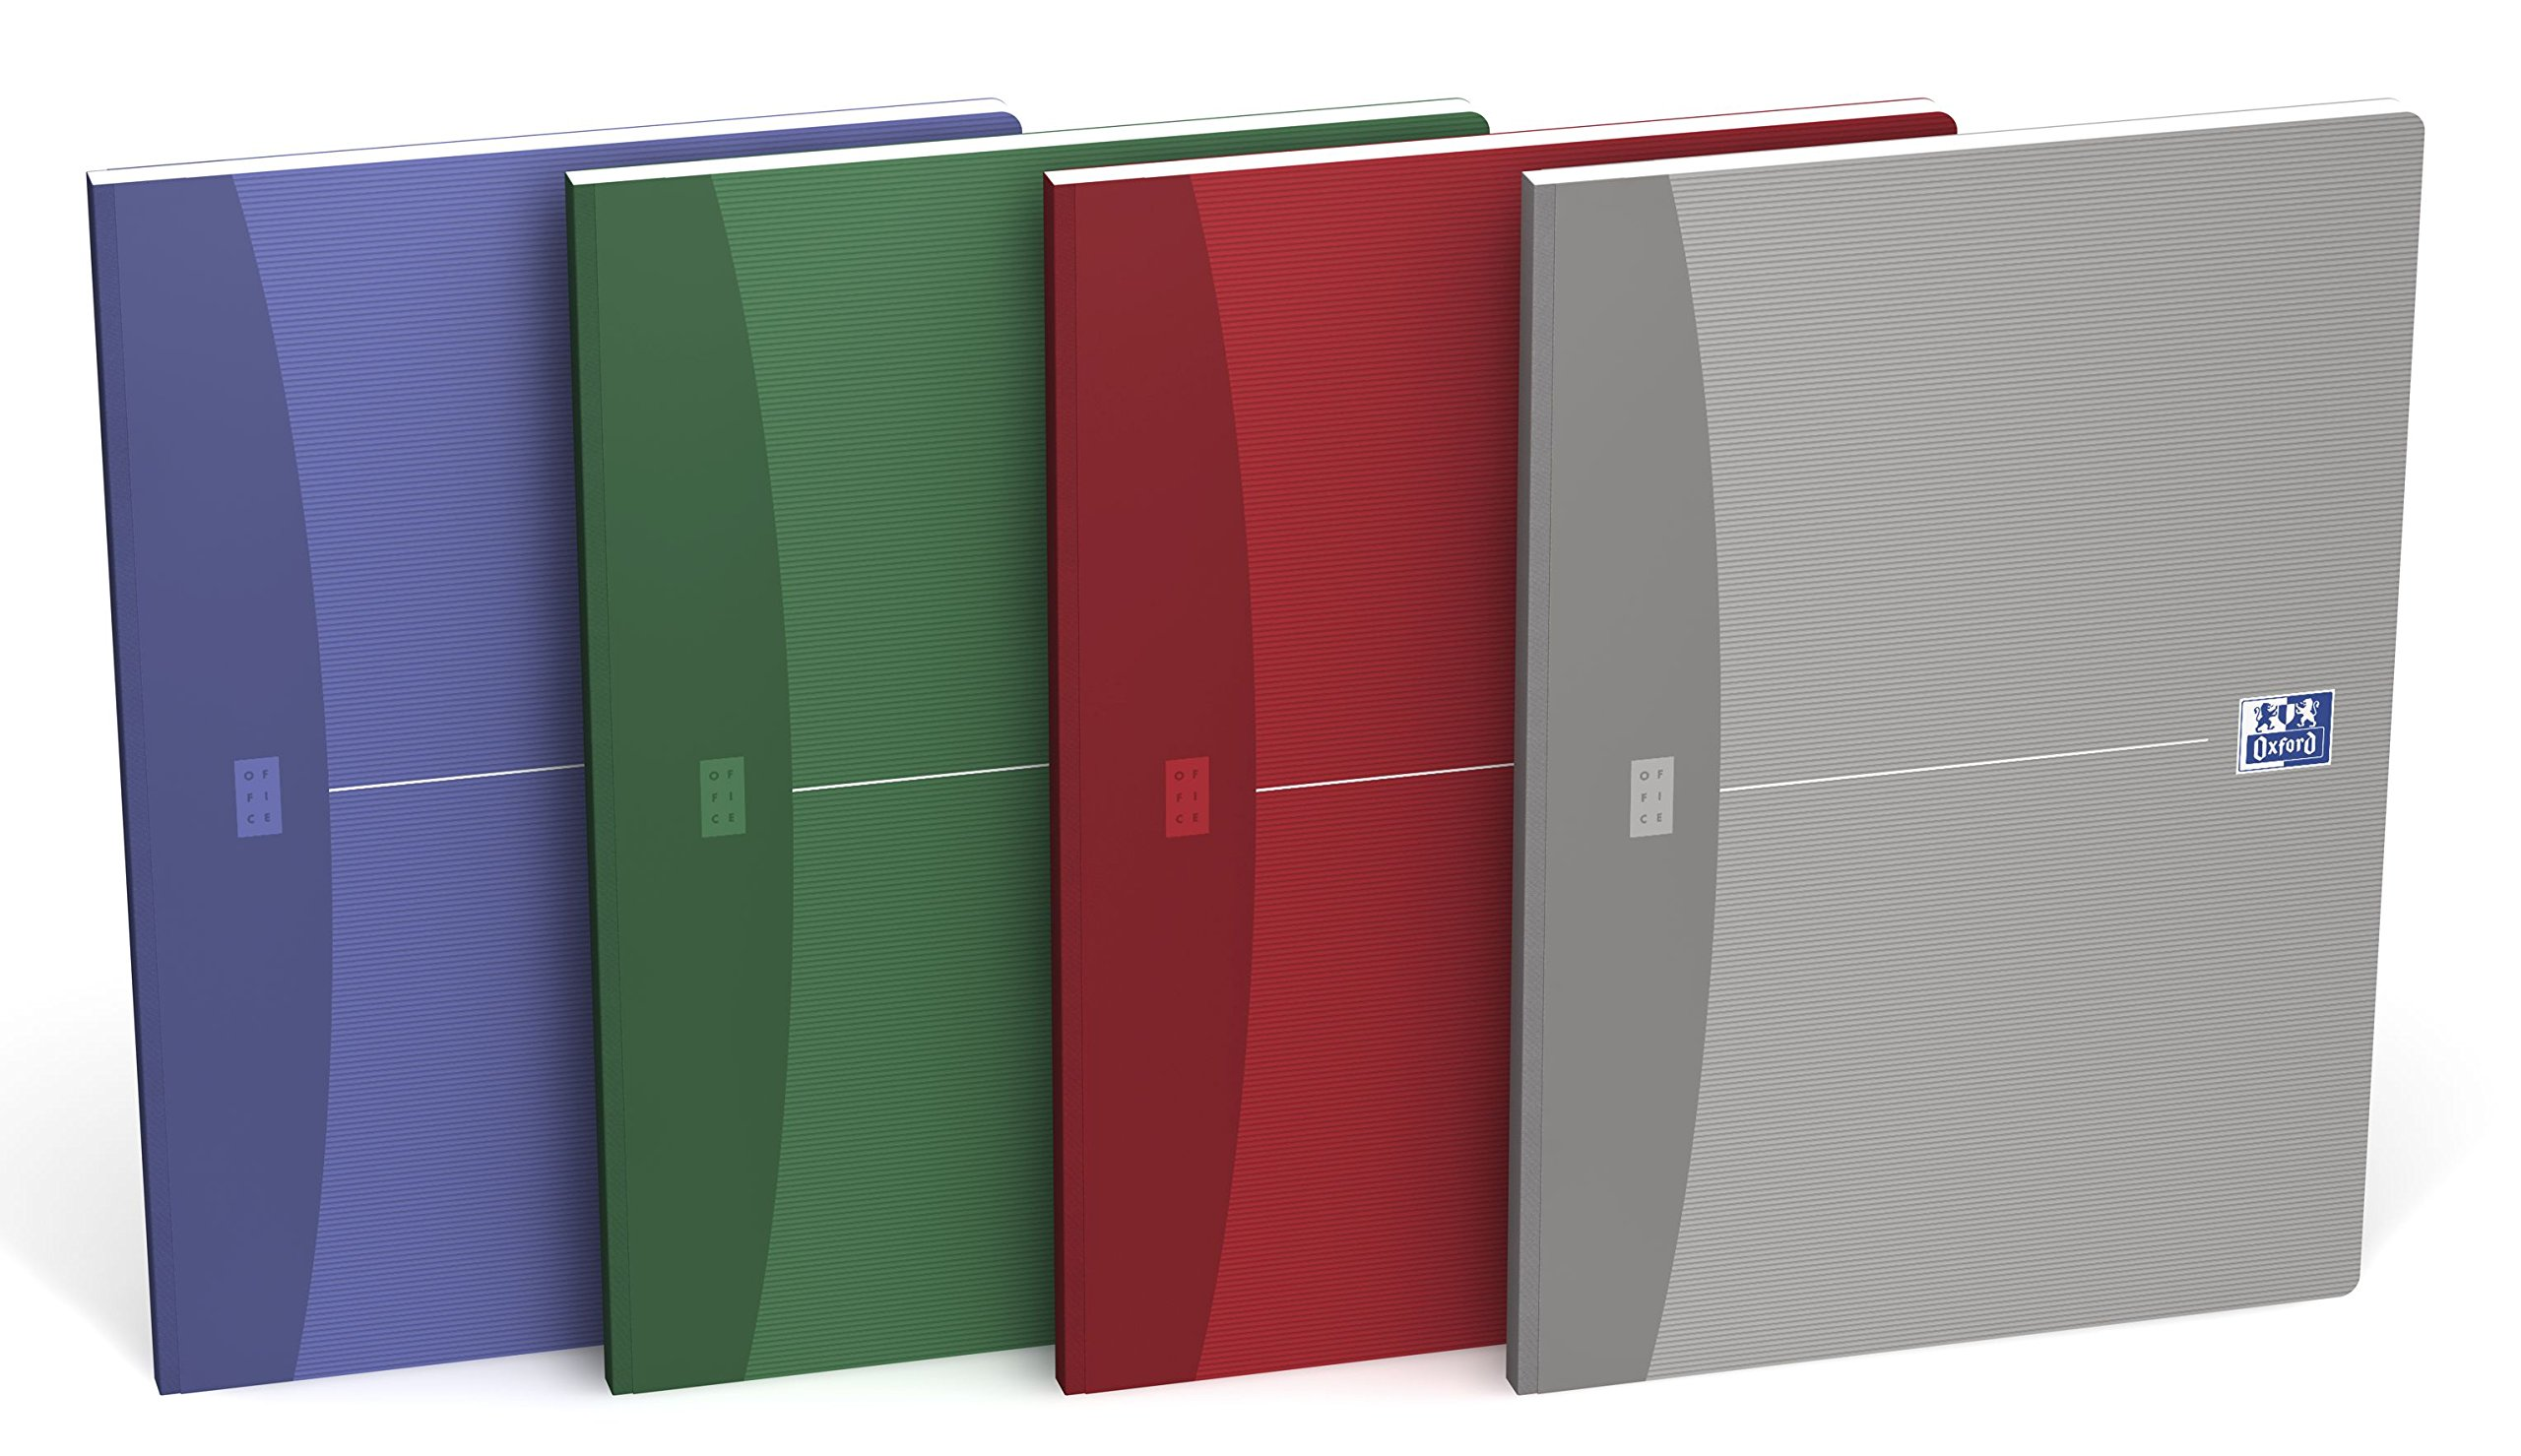 Oxford 100100923 Broschiertes Book Essentials Pack of 4 Different Coloured A4 Squared 96 Sheets Soft Cover